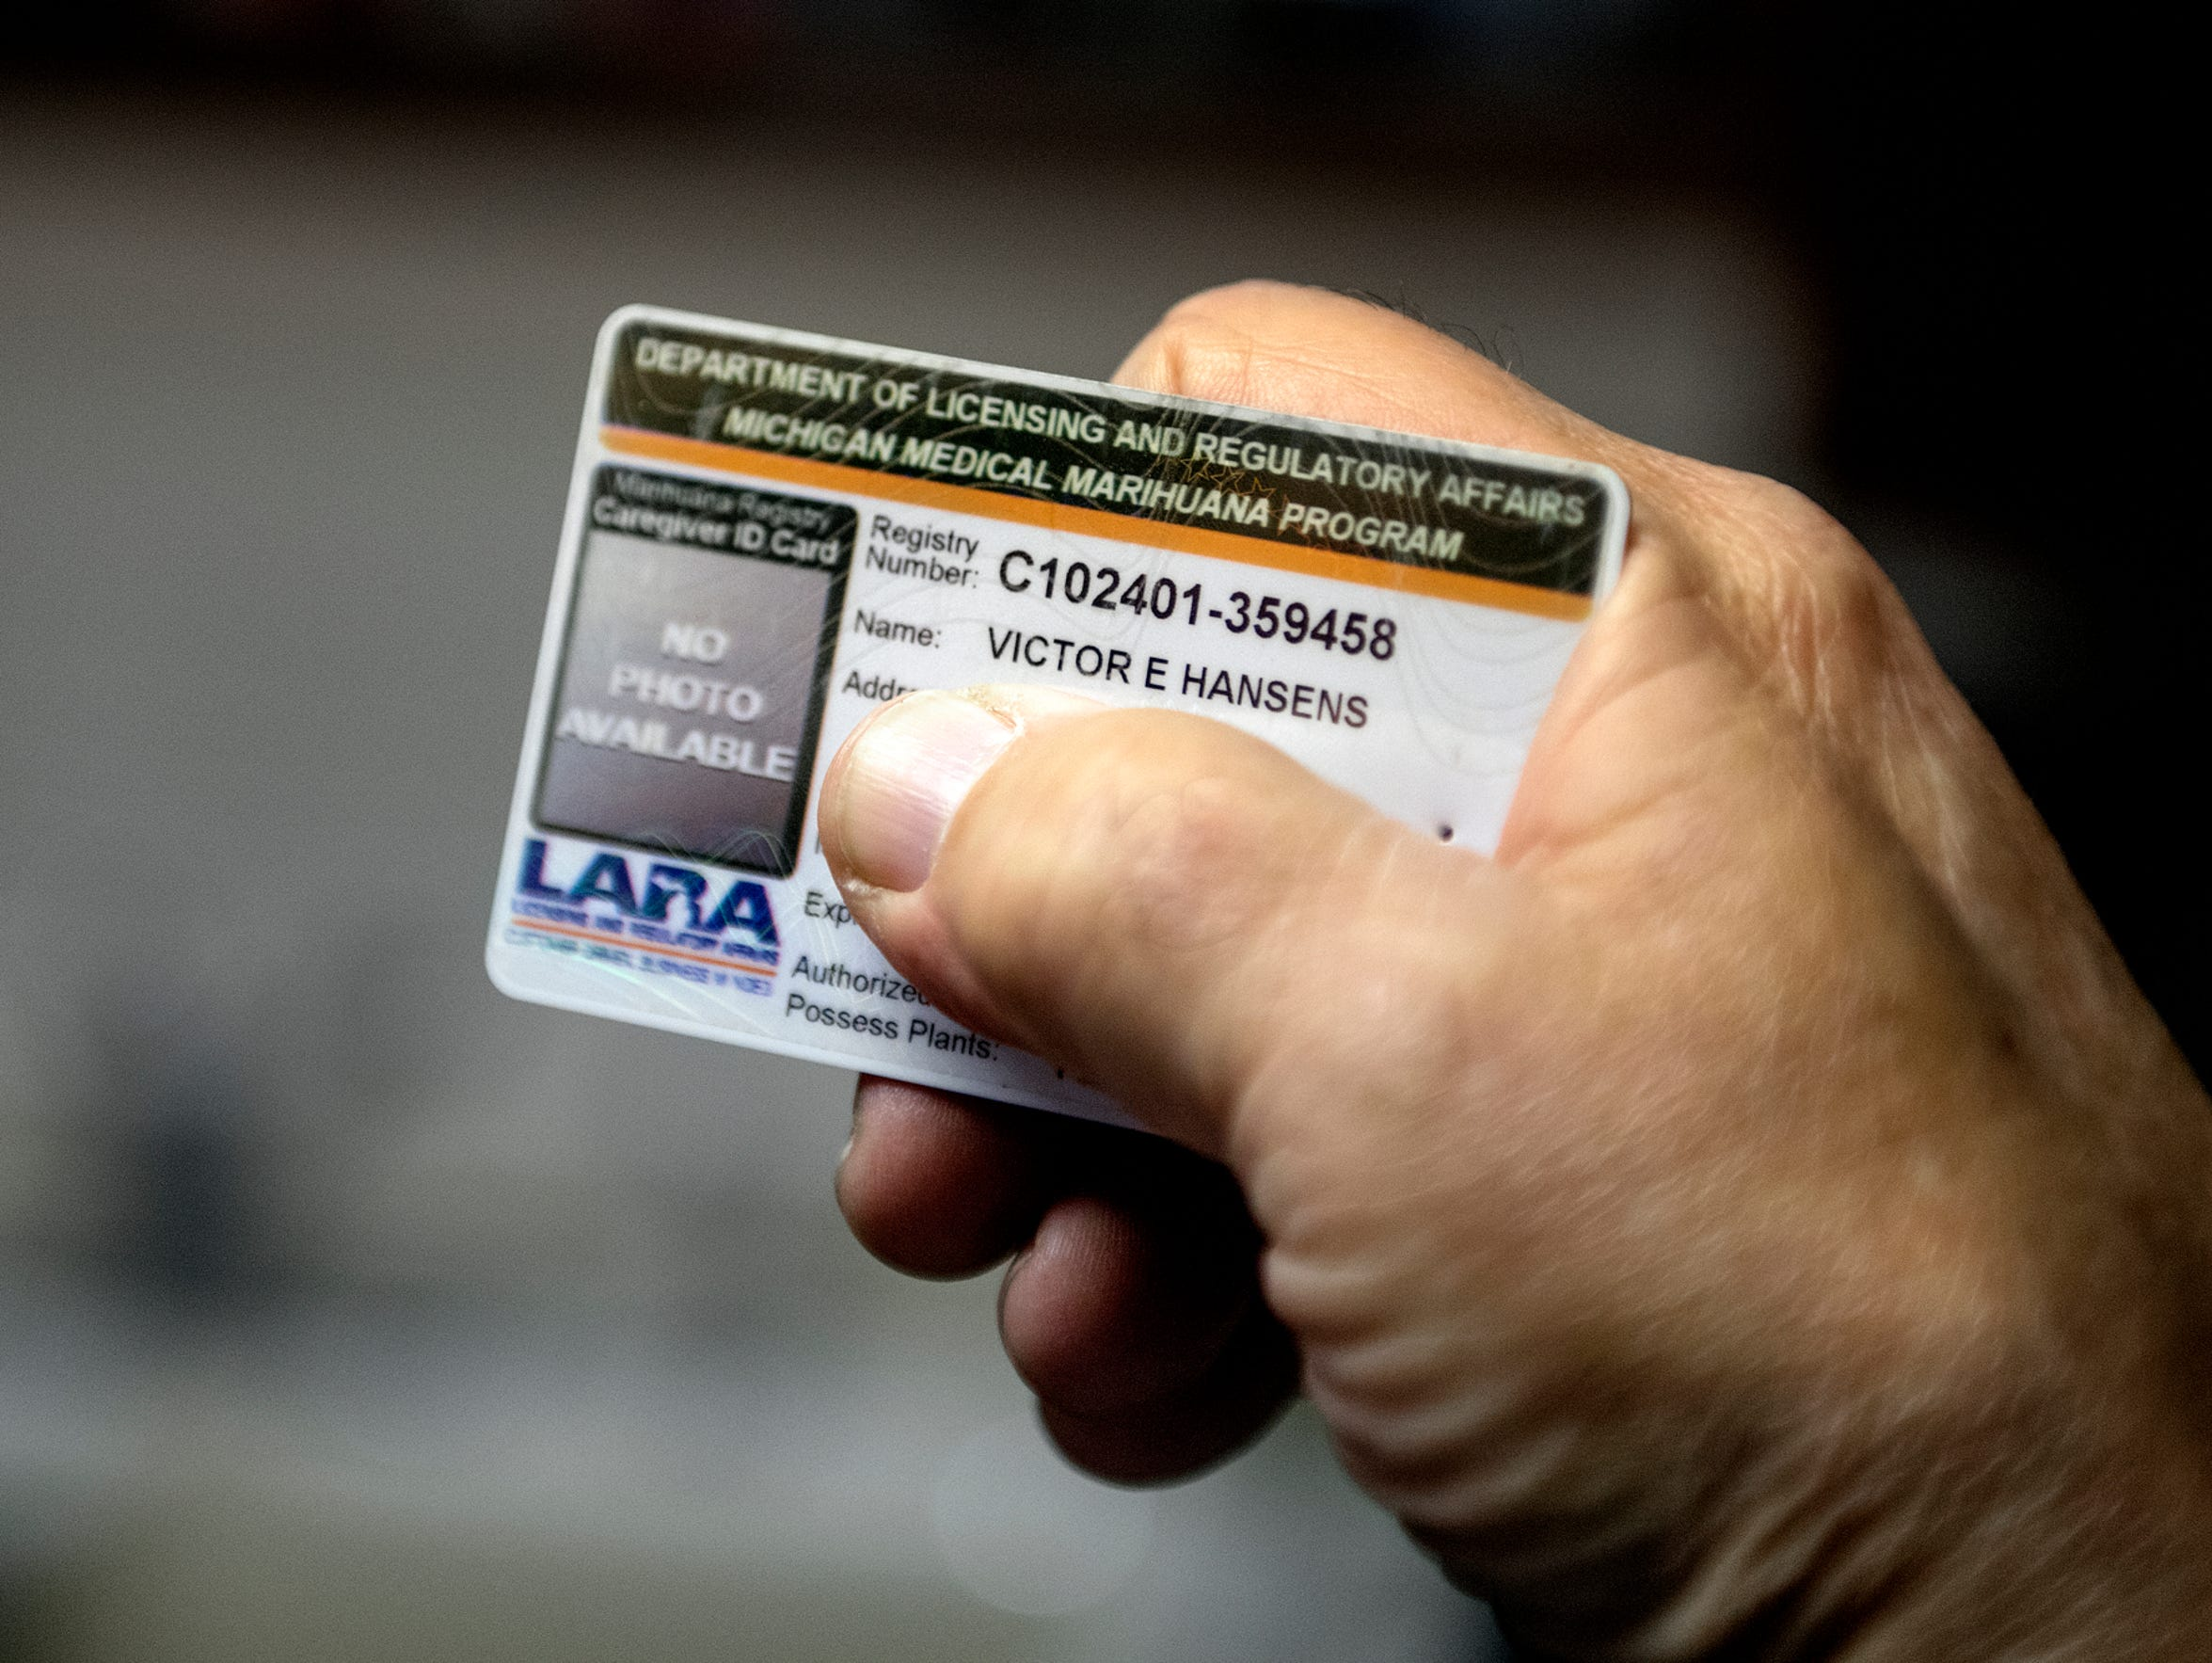 Victor Hansens' medical marijuana card photographed